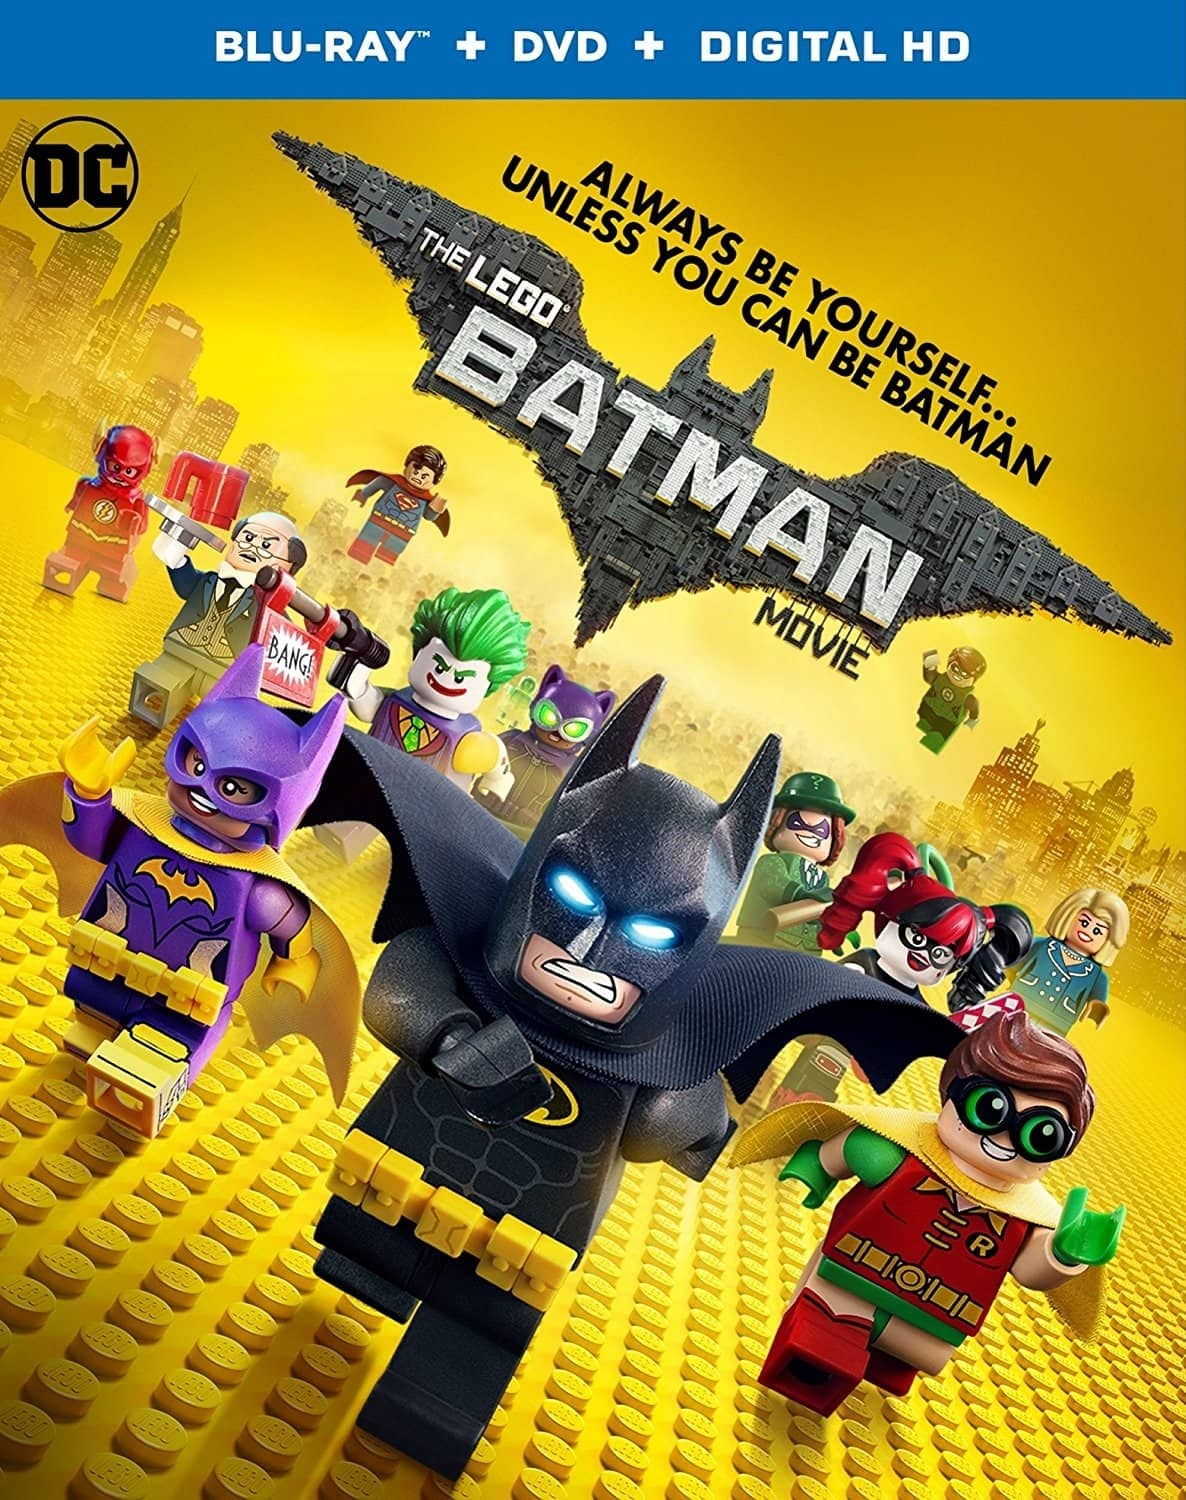 The Lego Batman Movie or The Lego Ninjago Movie (Blu-ray + DVD + Digital) $5.99